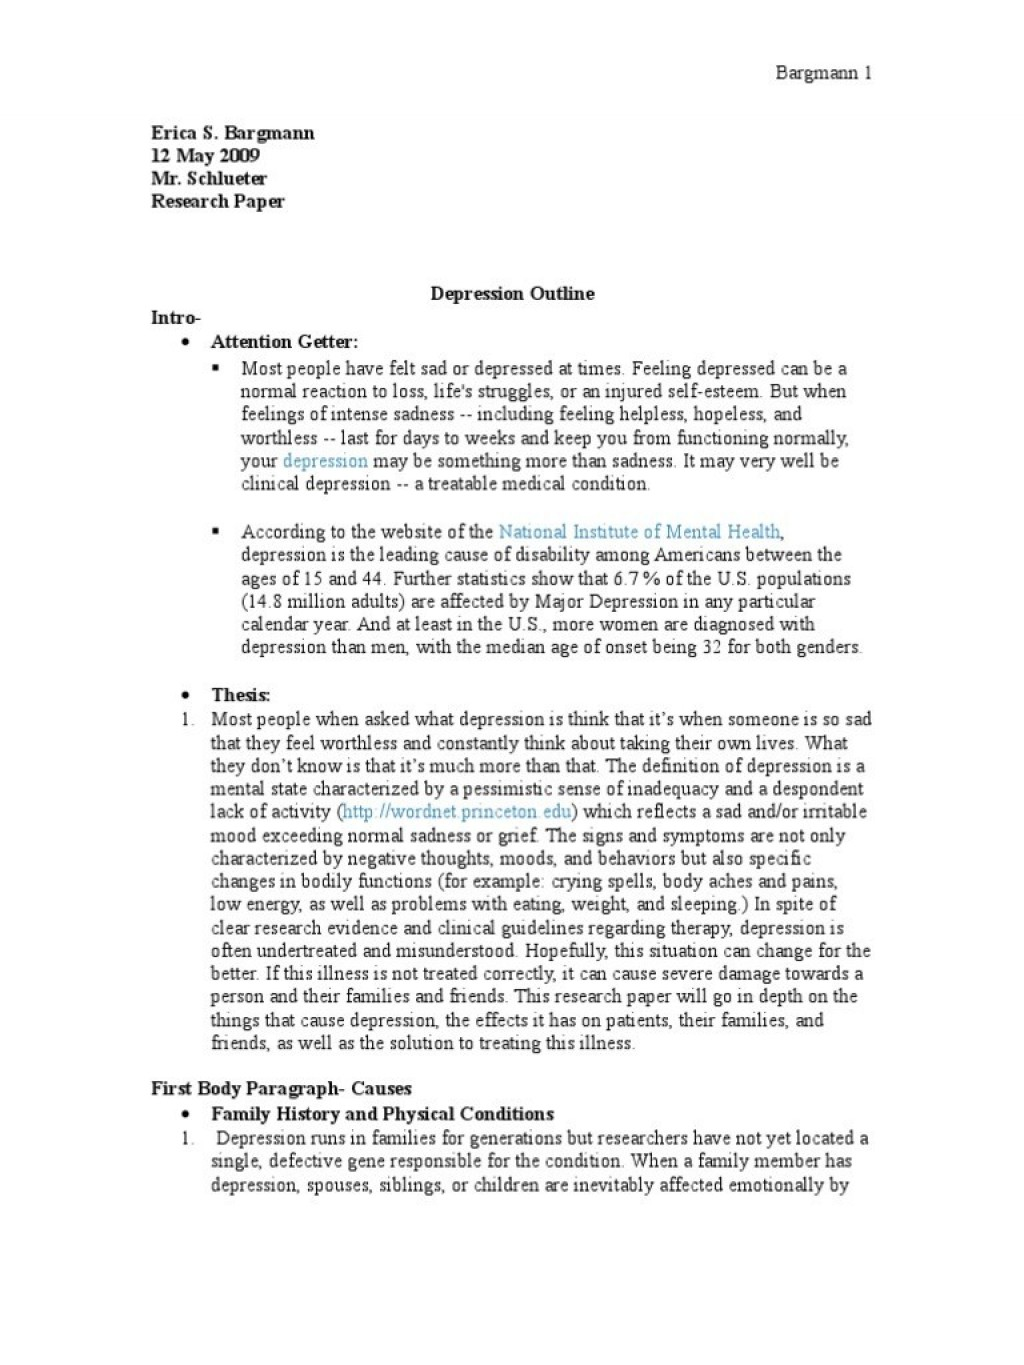 014 Essay On Depression Example Research Paper Outline Great Definition Examples Phenomenal Among Students Psychology Pdf Large